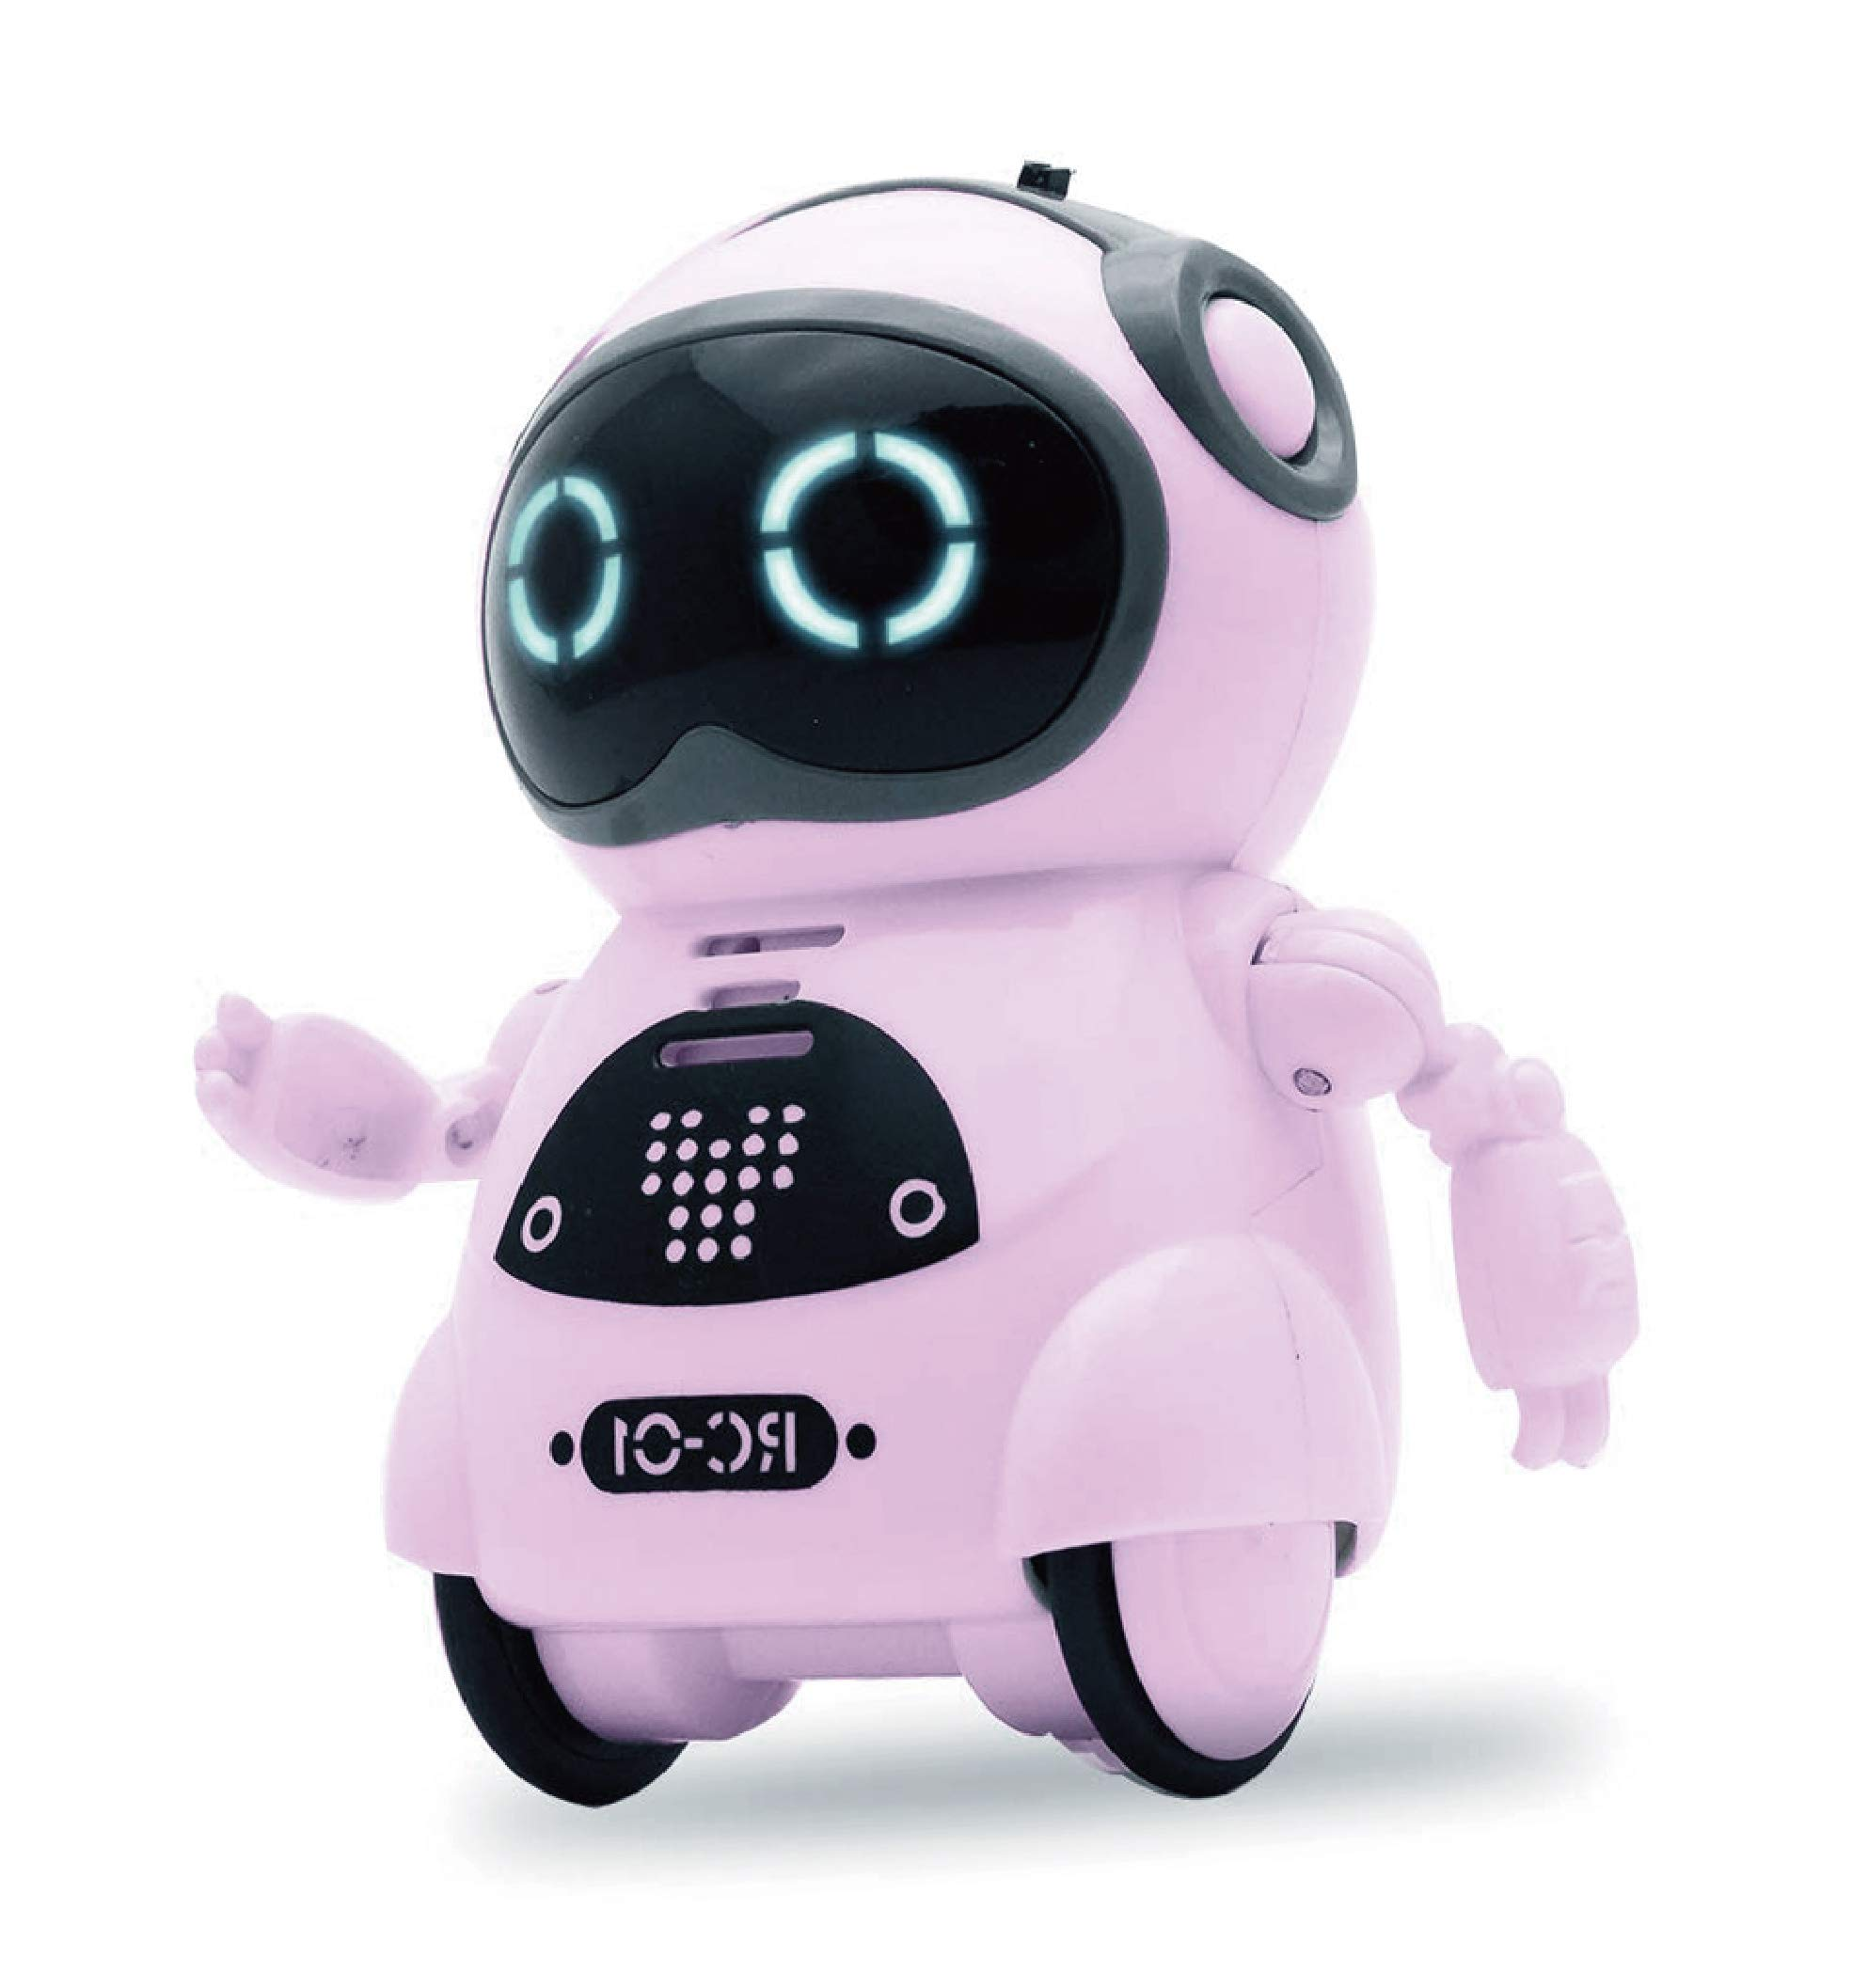 SPACE LION Educational Mini Pocket Robot for Kids Interactive Dialogue Conversation,Voice Control, Chat Record, Singing & Dancing-Pink by SPACE LION (Image #1)